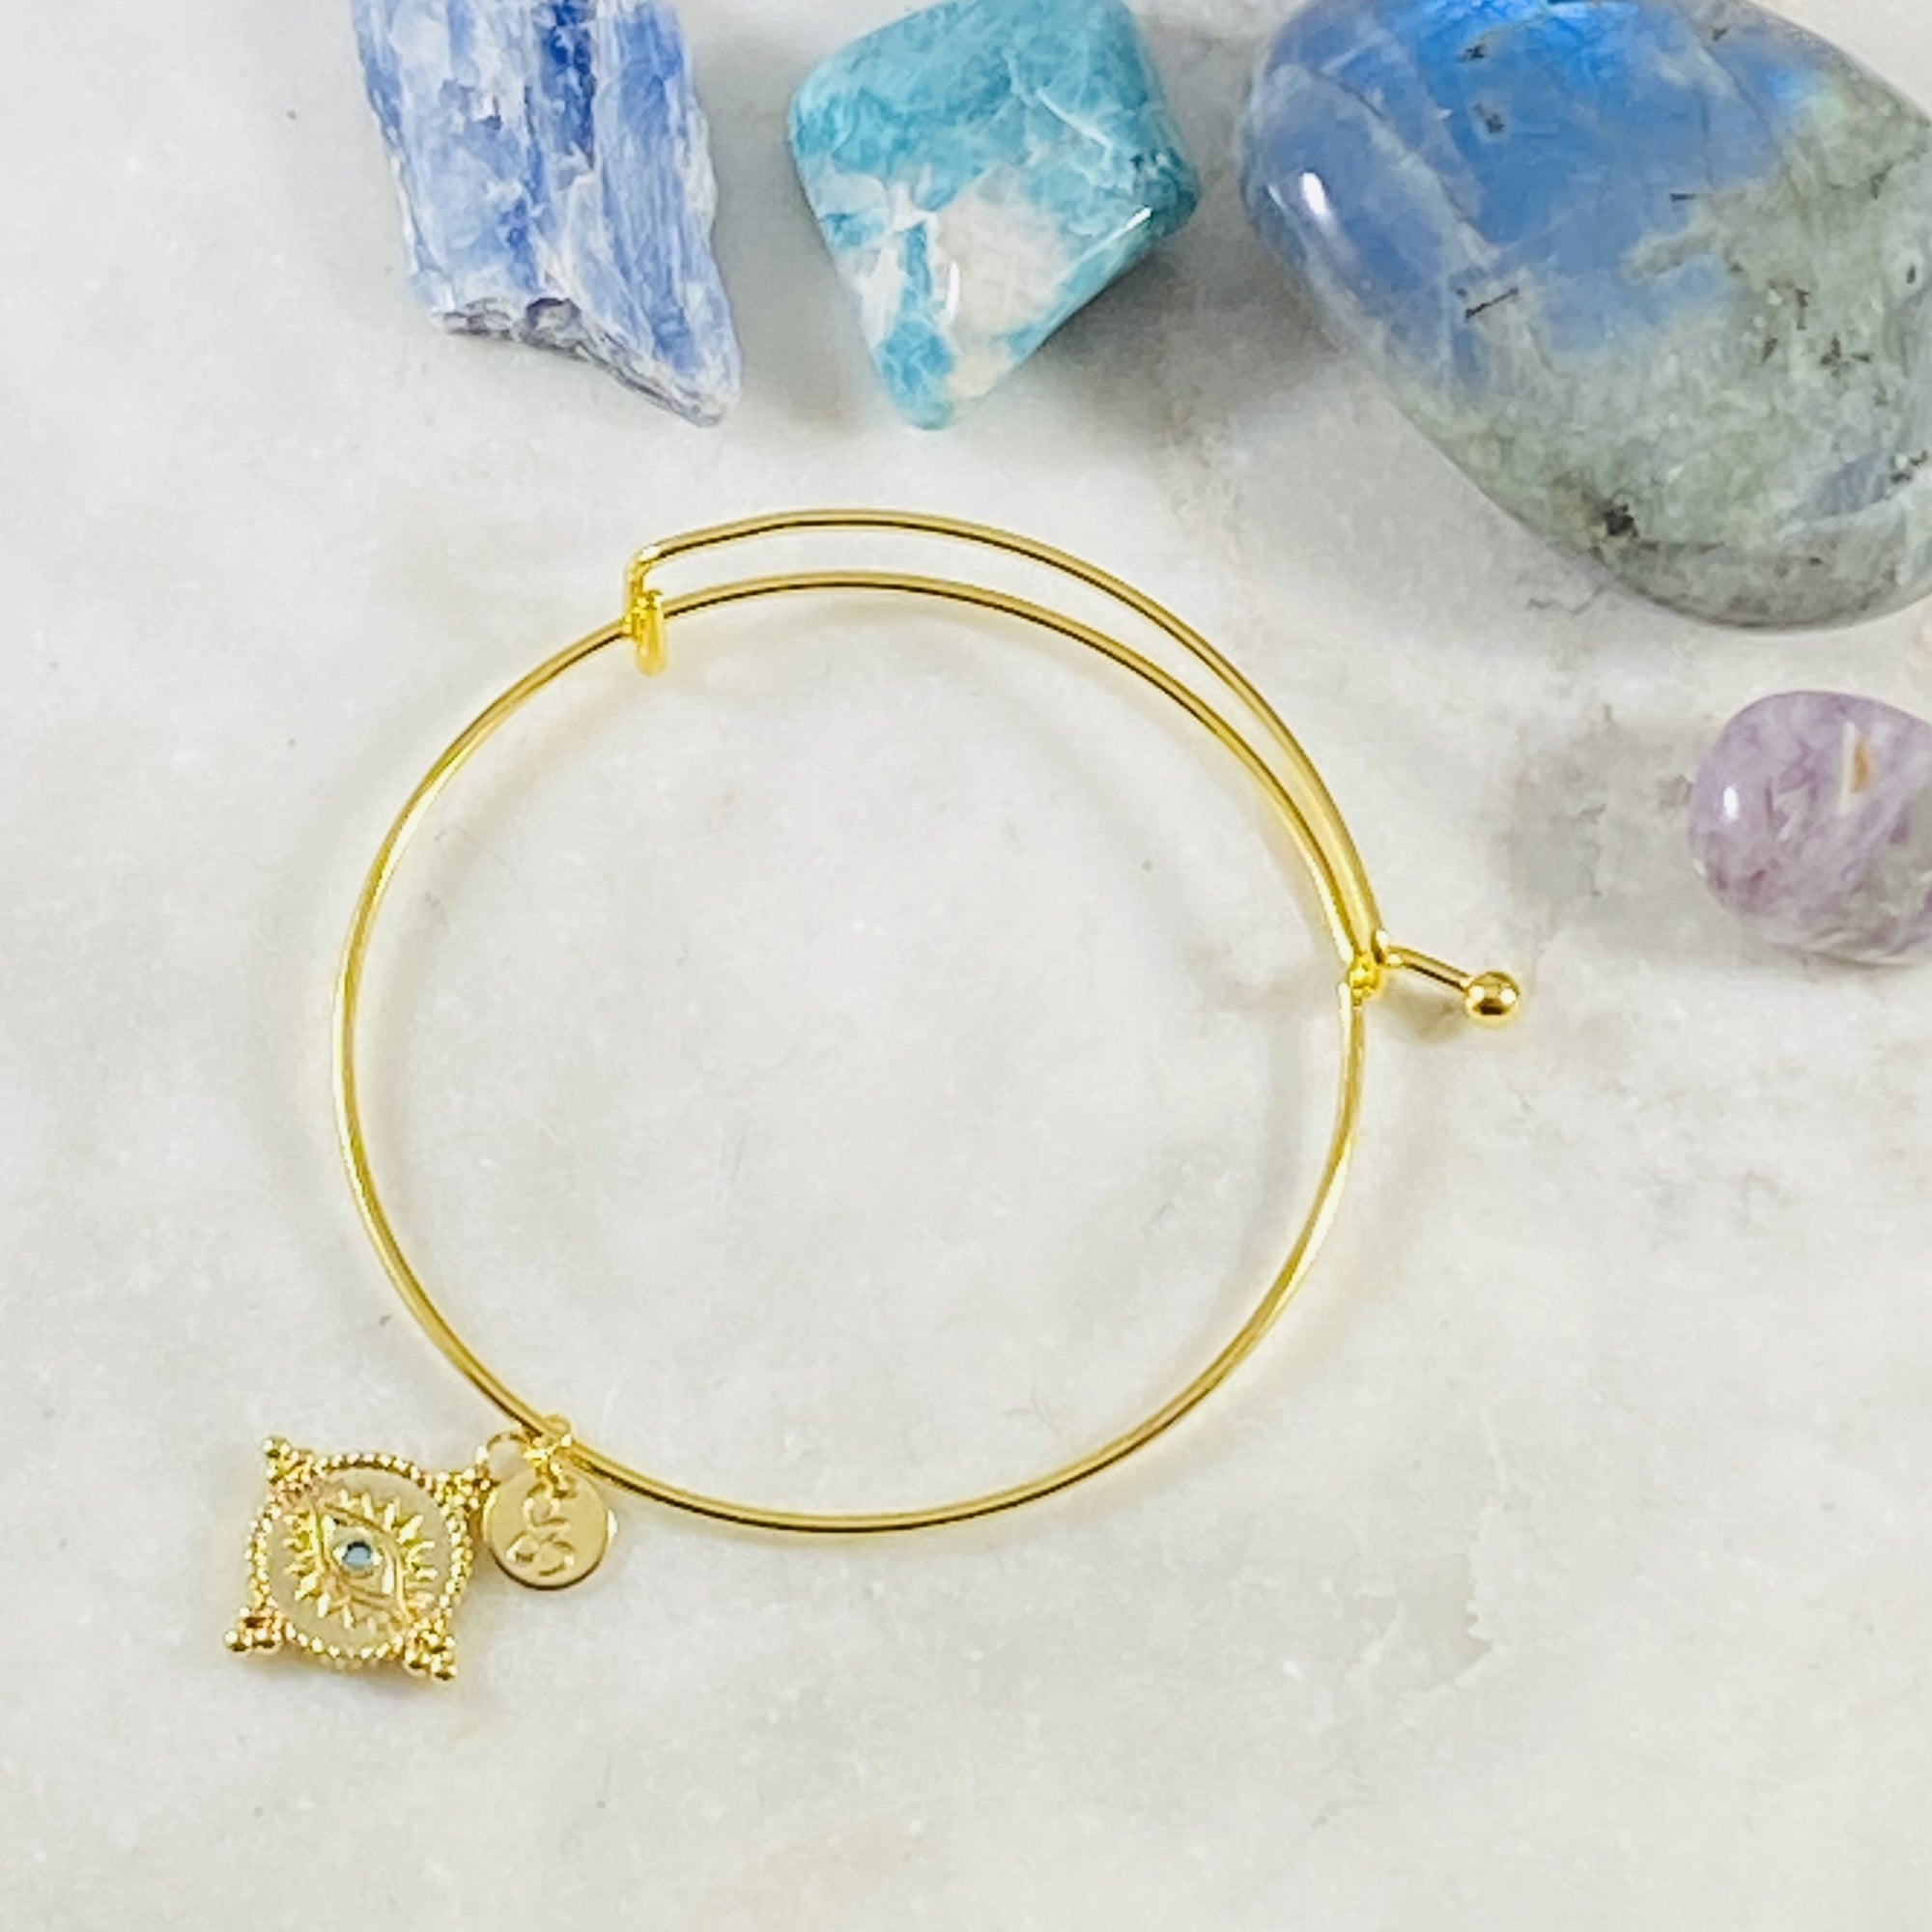 Gold Third Eye Bangle Bracelet